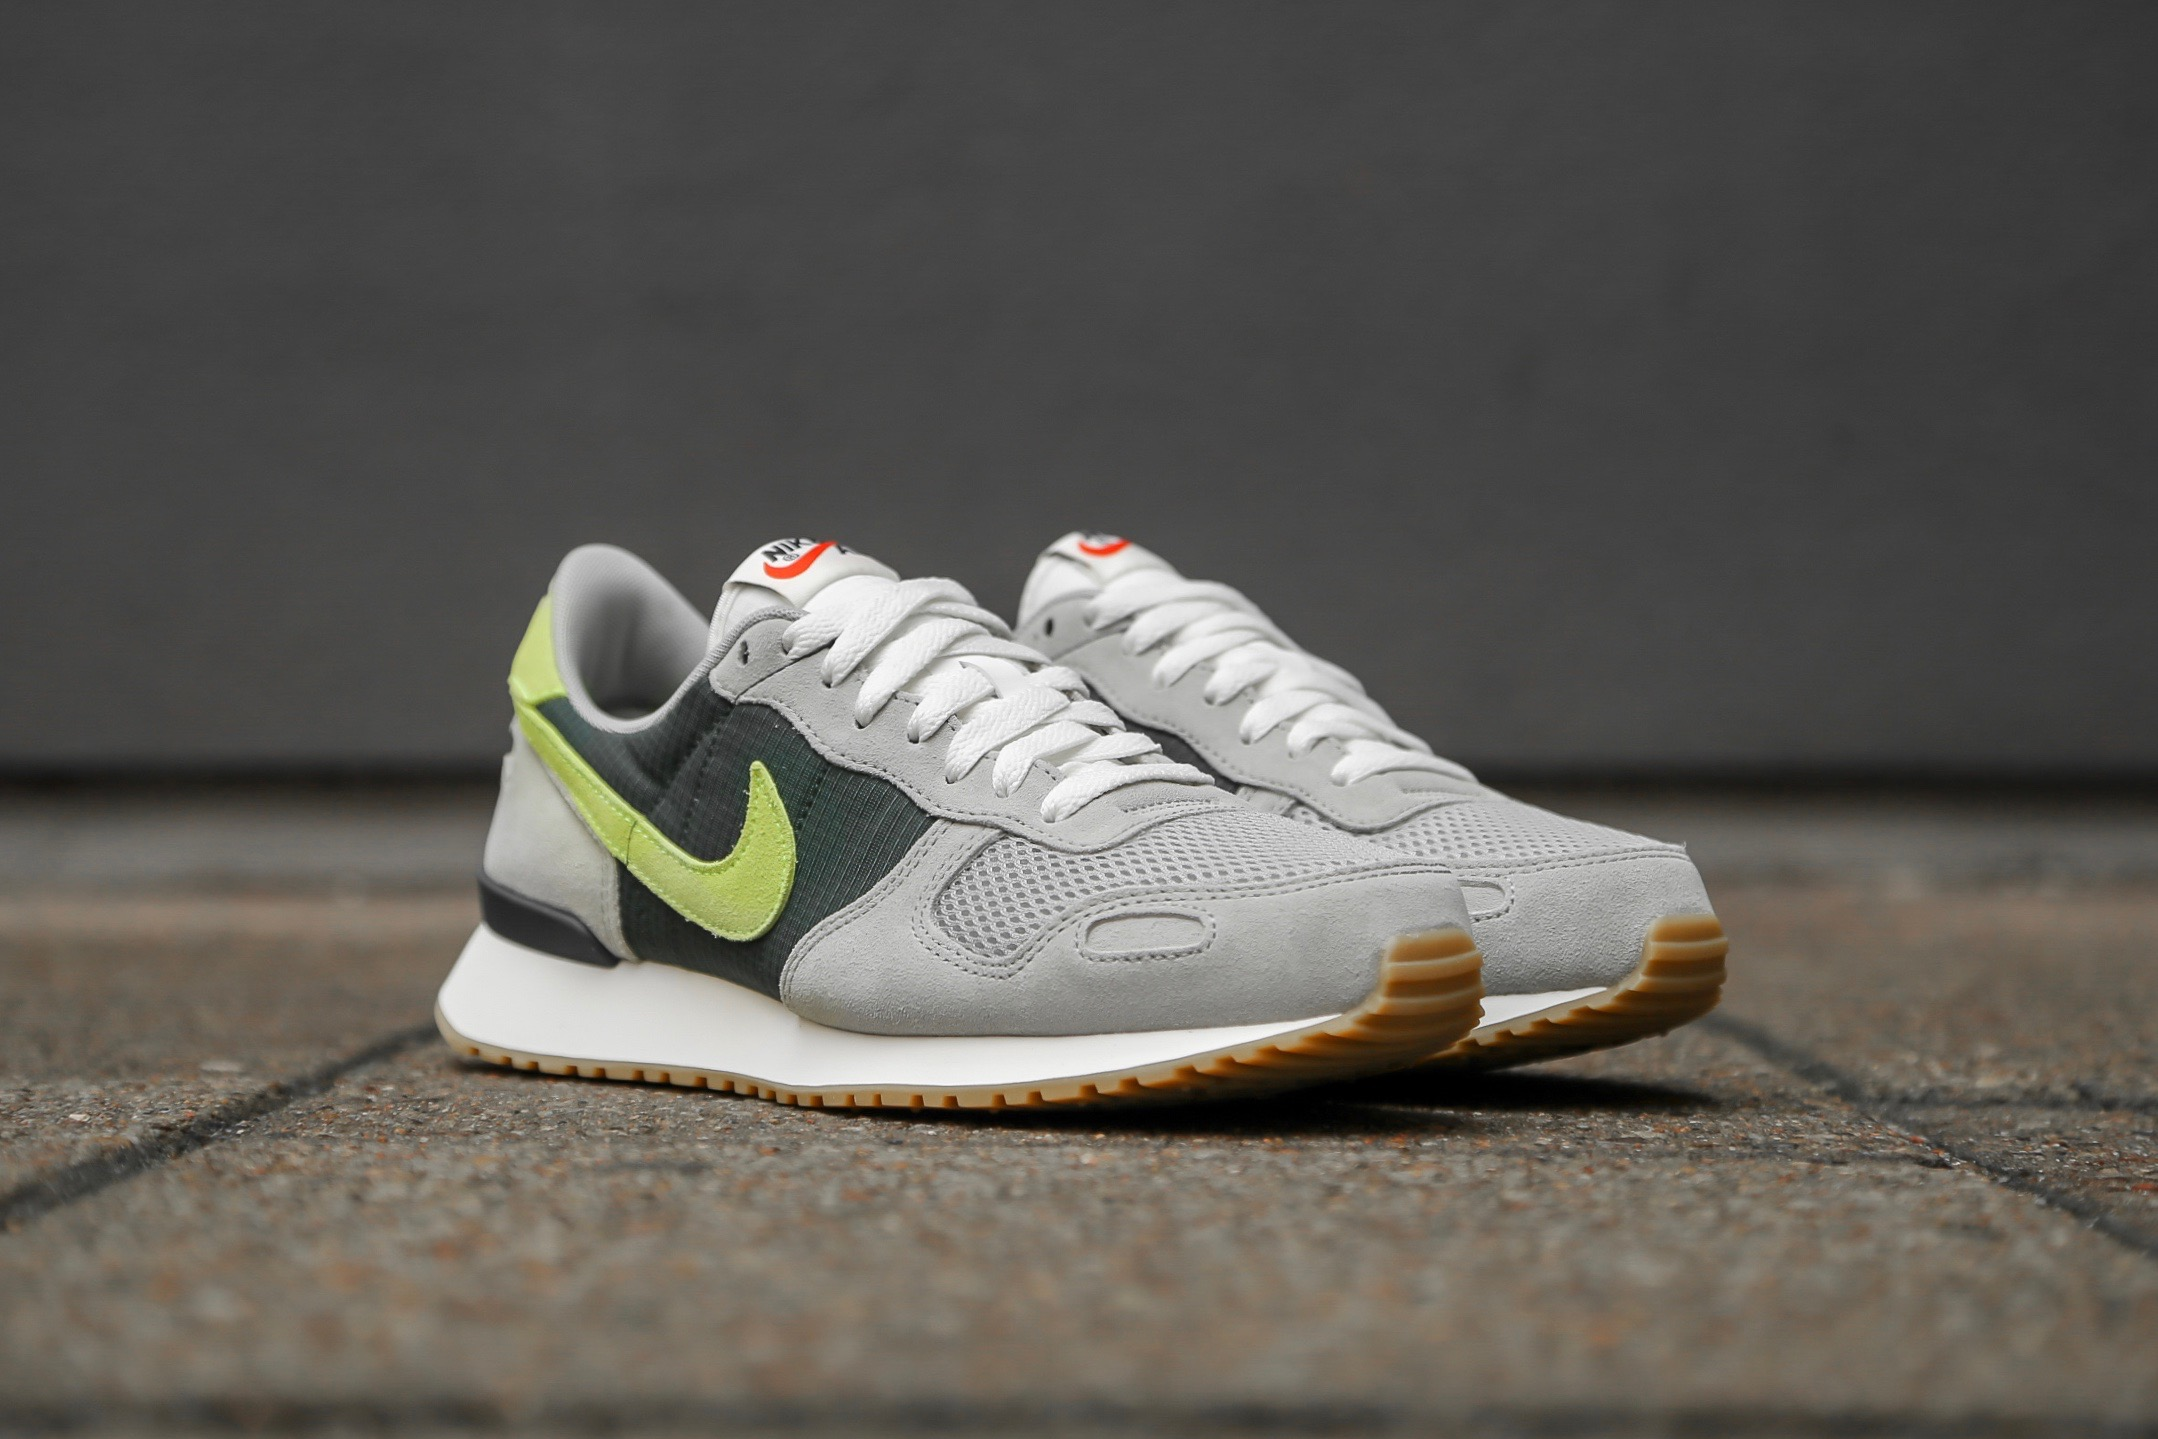 competitive price d0960 21391 Nike Air Vortex – Spruce Fog   Outdoor Green   Sail   Volt Glow – STASP